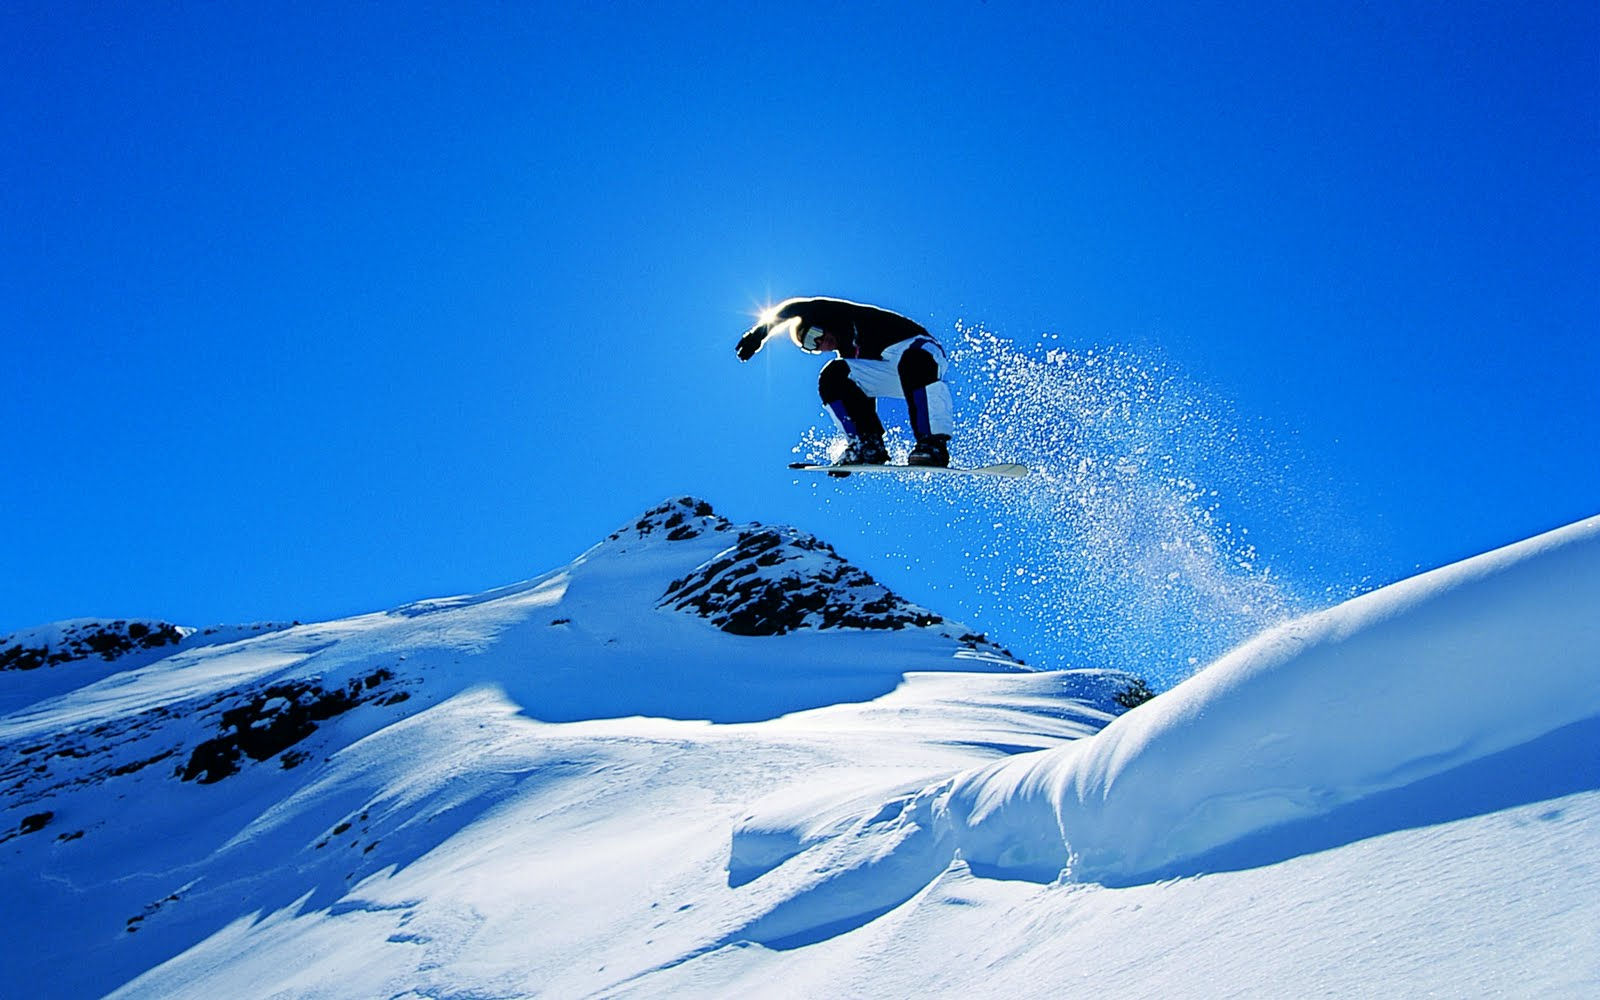 Sport Wallpaper: ONLY 4 WALLPAPER: AMAZING EXTREME SPORTS WALLPAPER [PART 1]